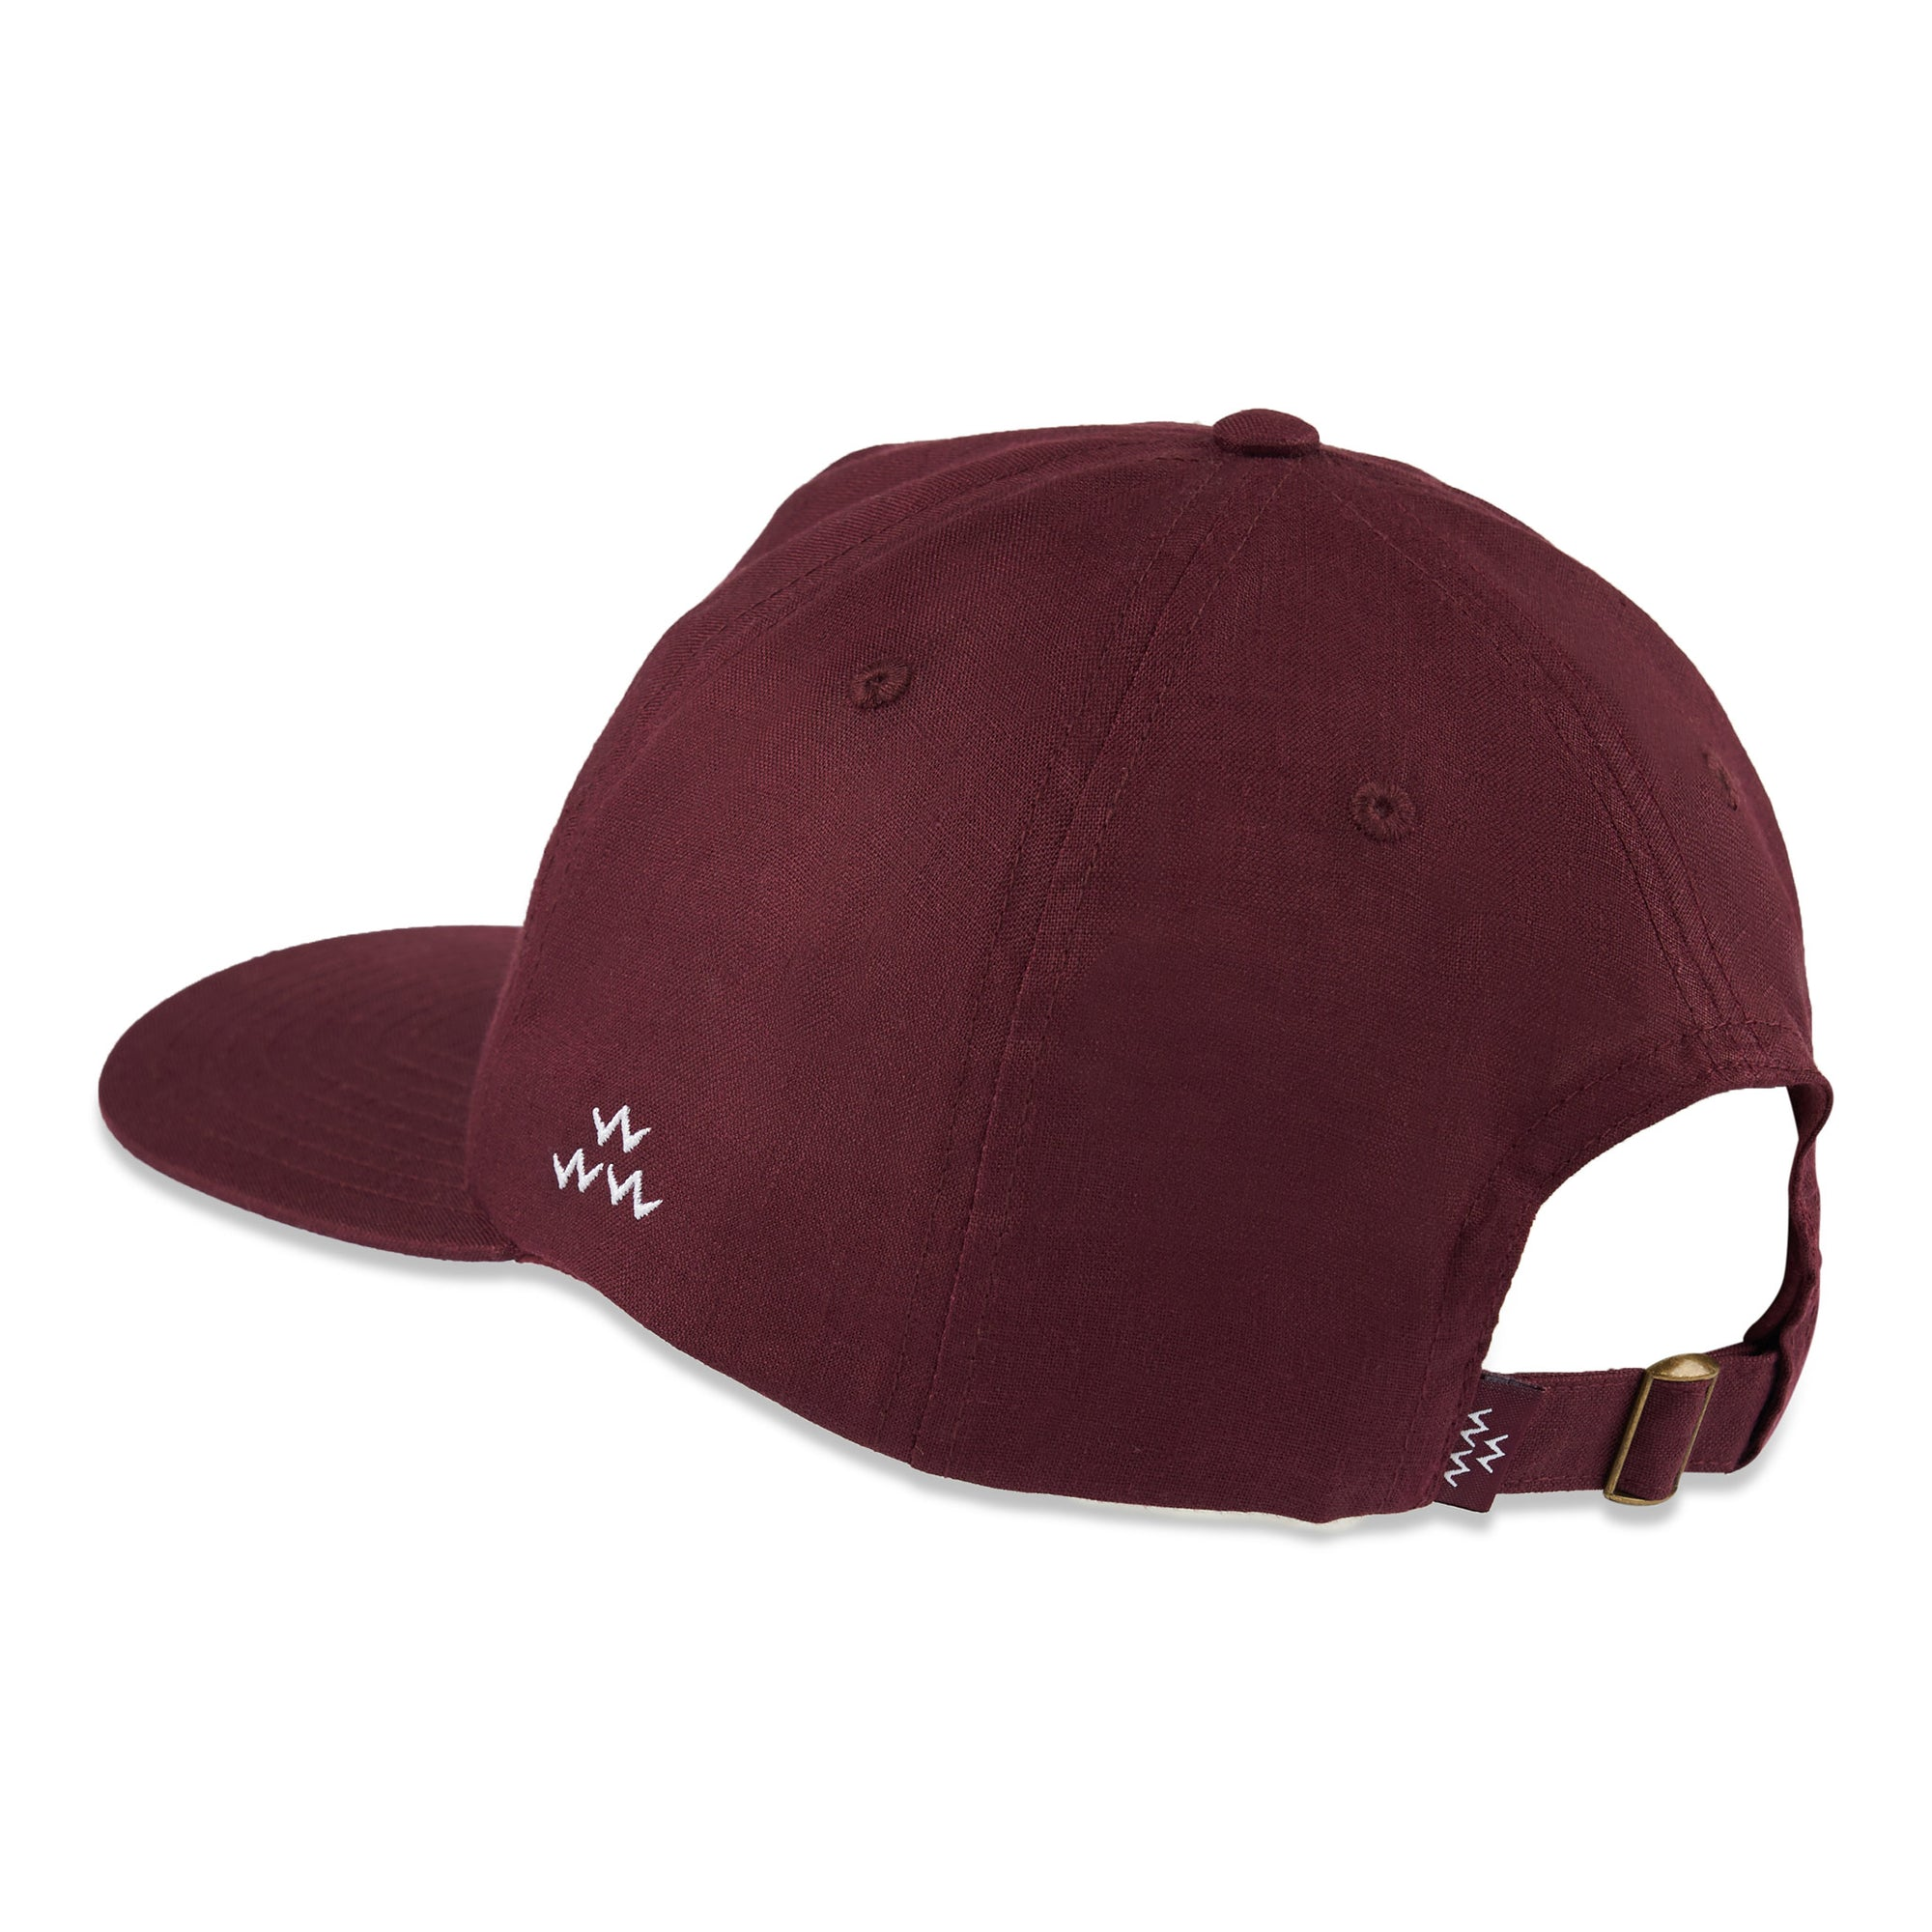 birds-of-condor-burgundy-hemp-golf-green-dreams-hat-cap-front